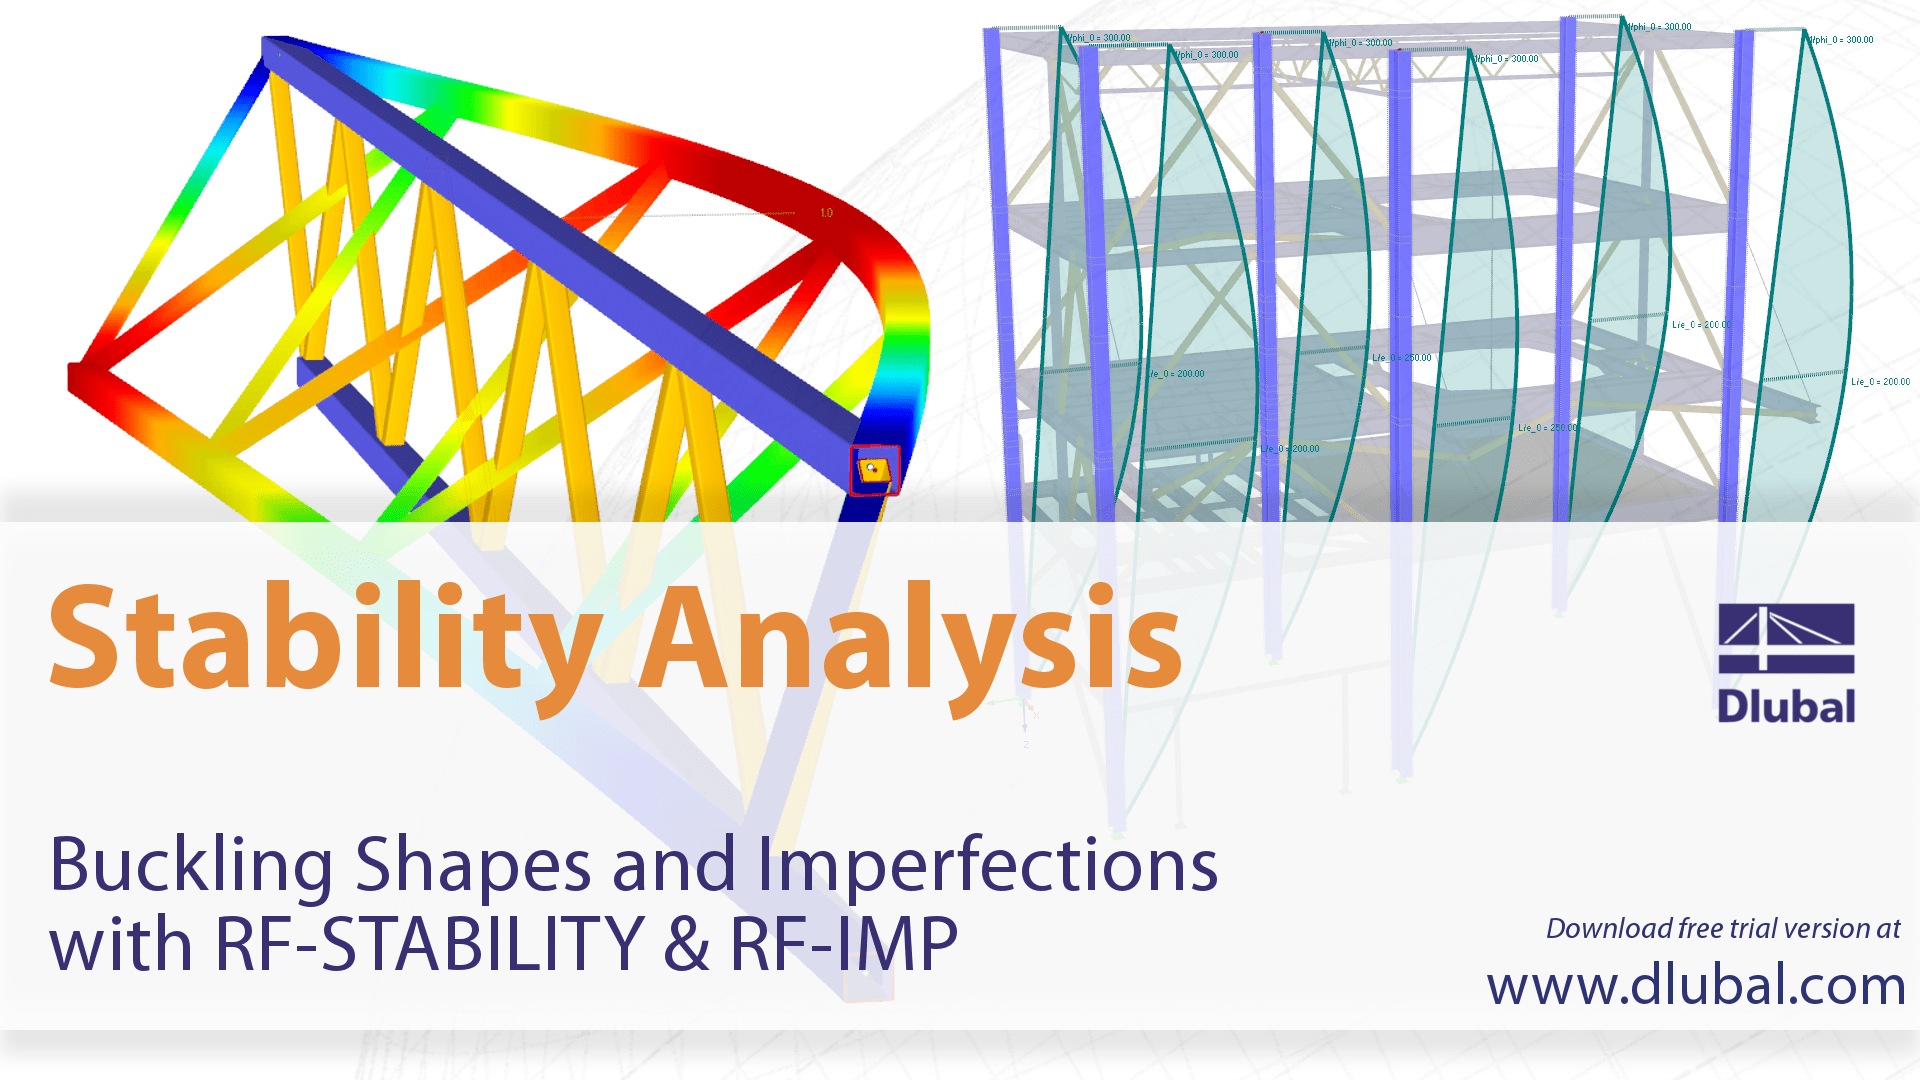 Stability Analysis with RF-STABILITY & RF-IMP